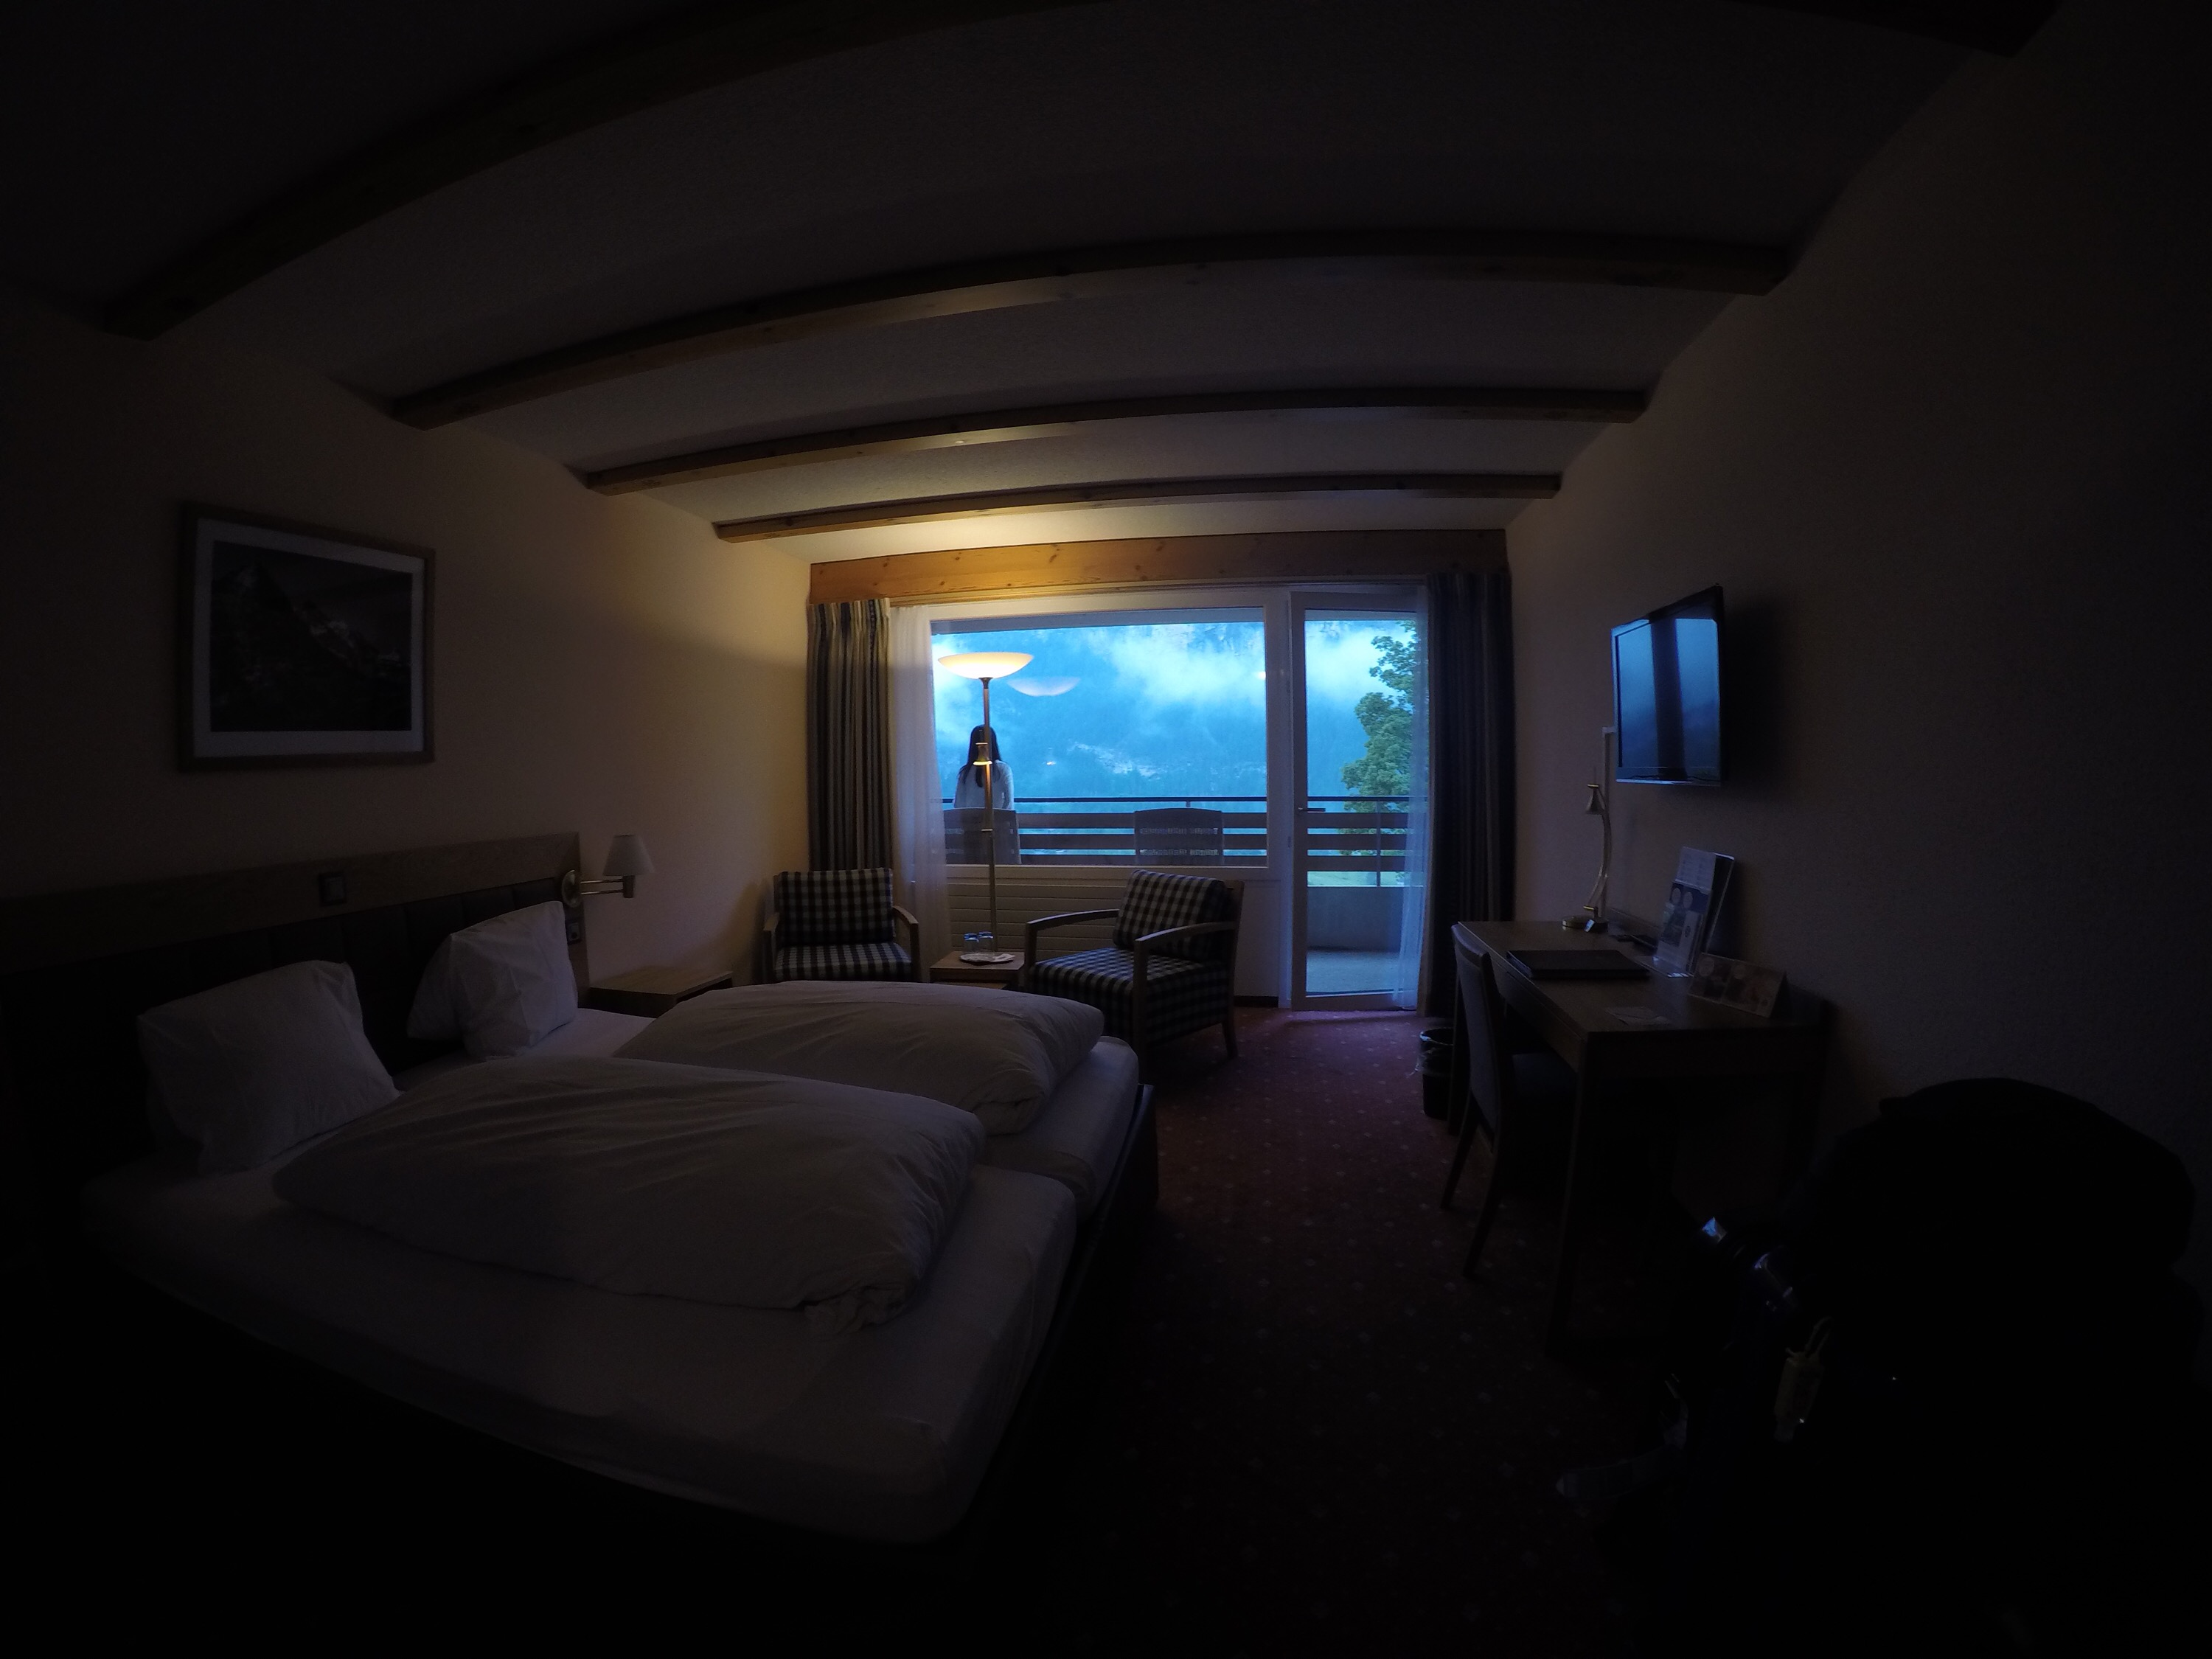 Room is awesome with view of the Alps!!!